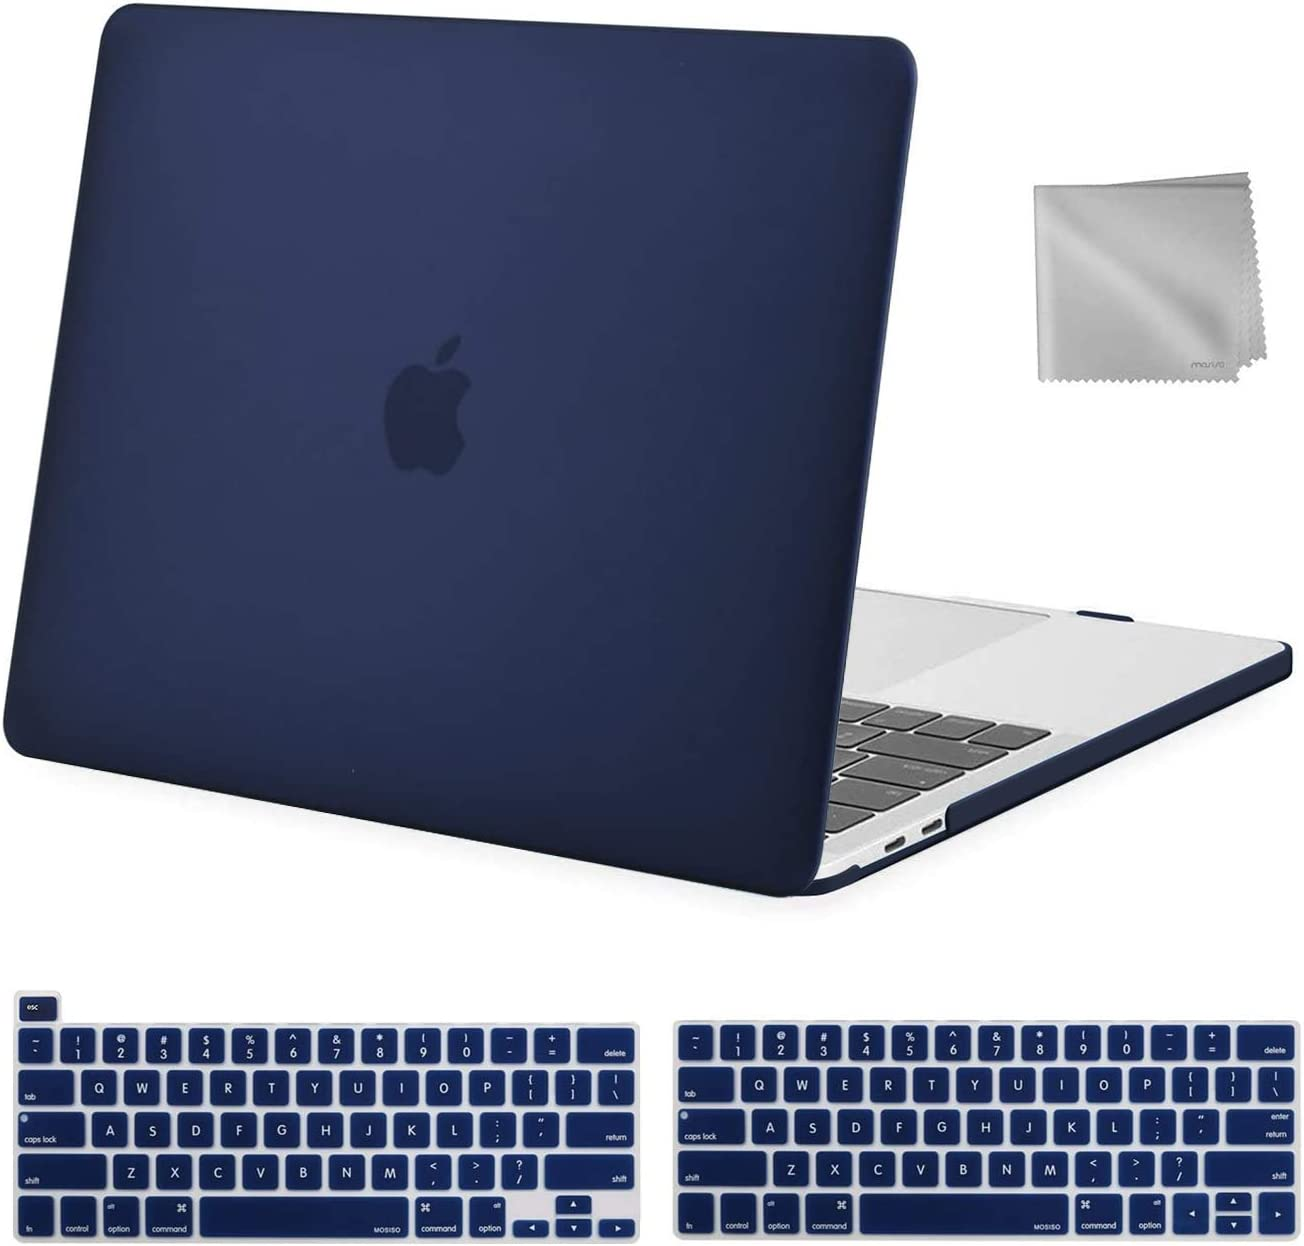 MOSISO MacBook Pro 13 inch Case 2020 2019 2018 2017 2016 Release A2289 A2251 A2159 A1989 A1706 A1708, Plastic Hard Shell&Keyboard Cover&Wipe Cloth Compatible with MacBook Pro 13 inch, Navy Blue